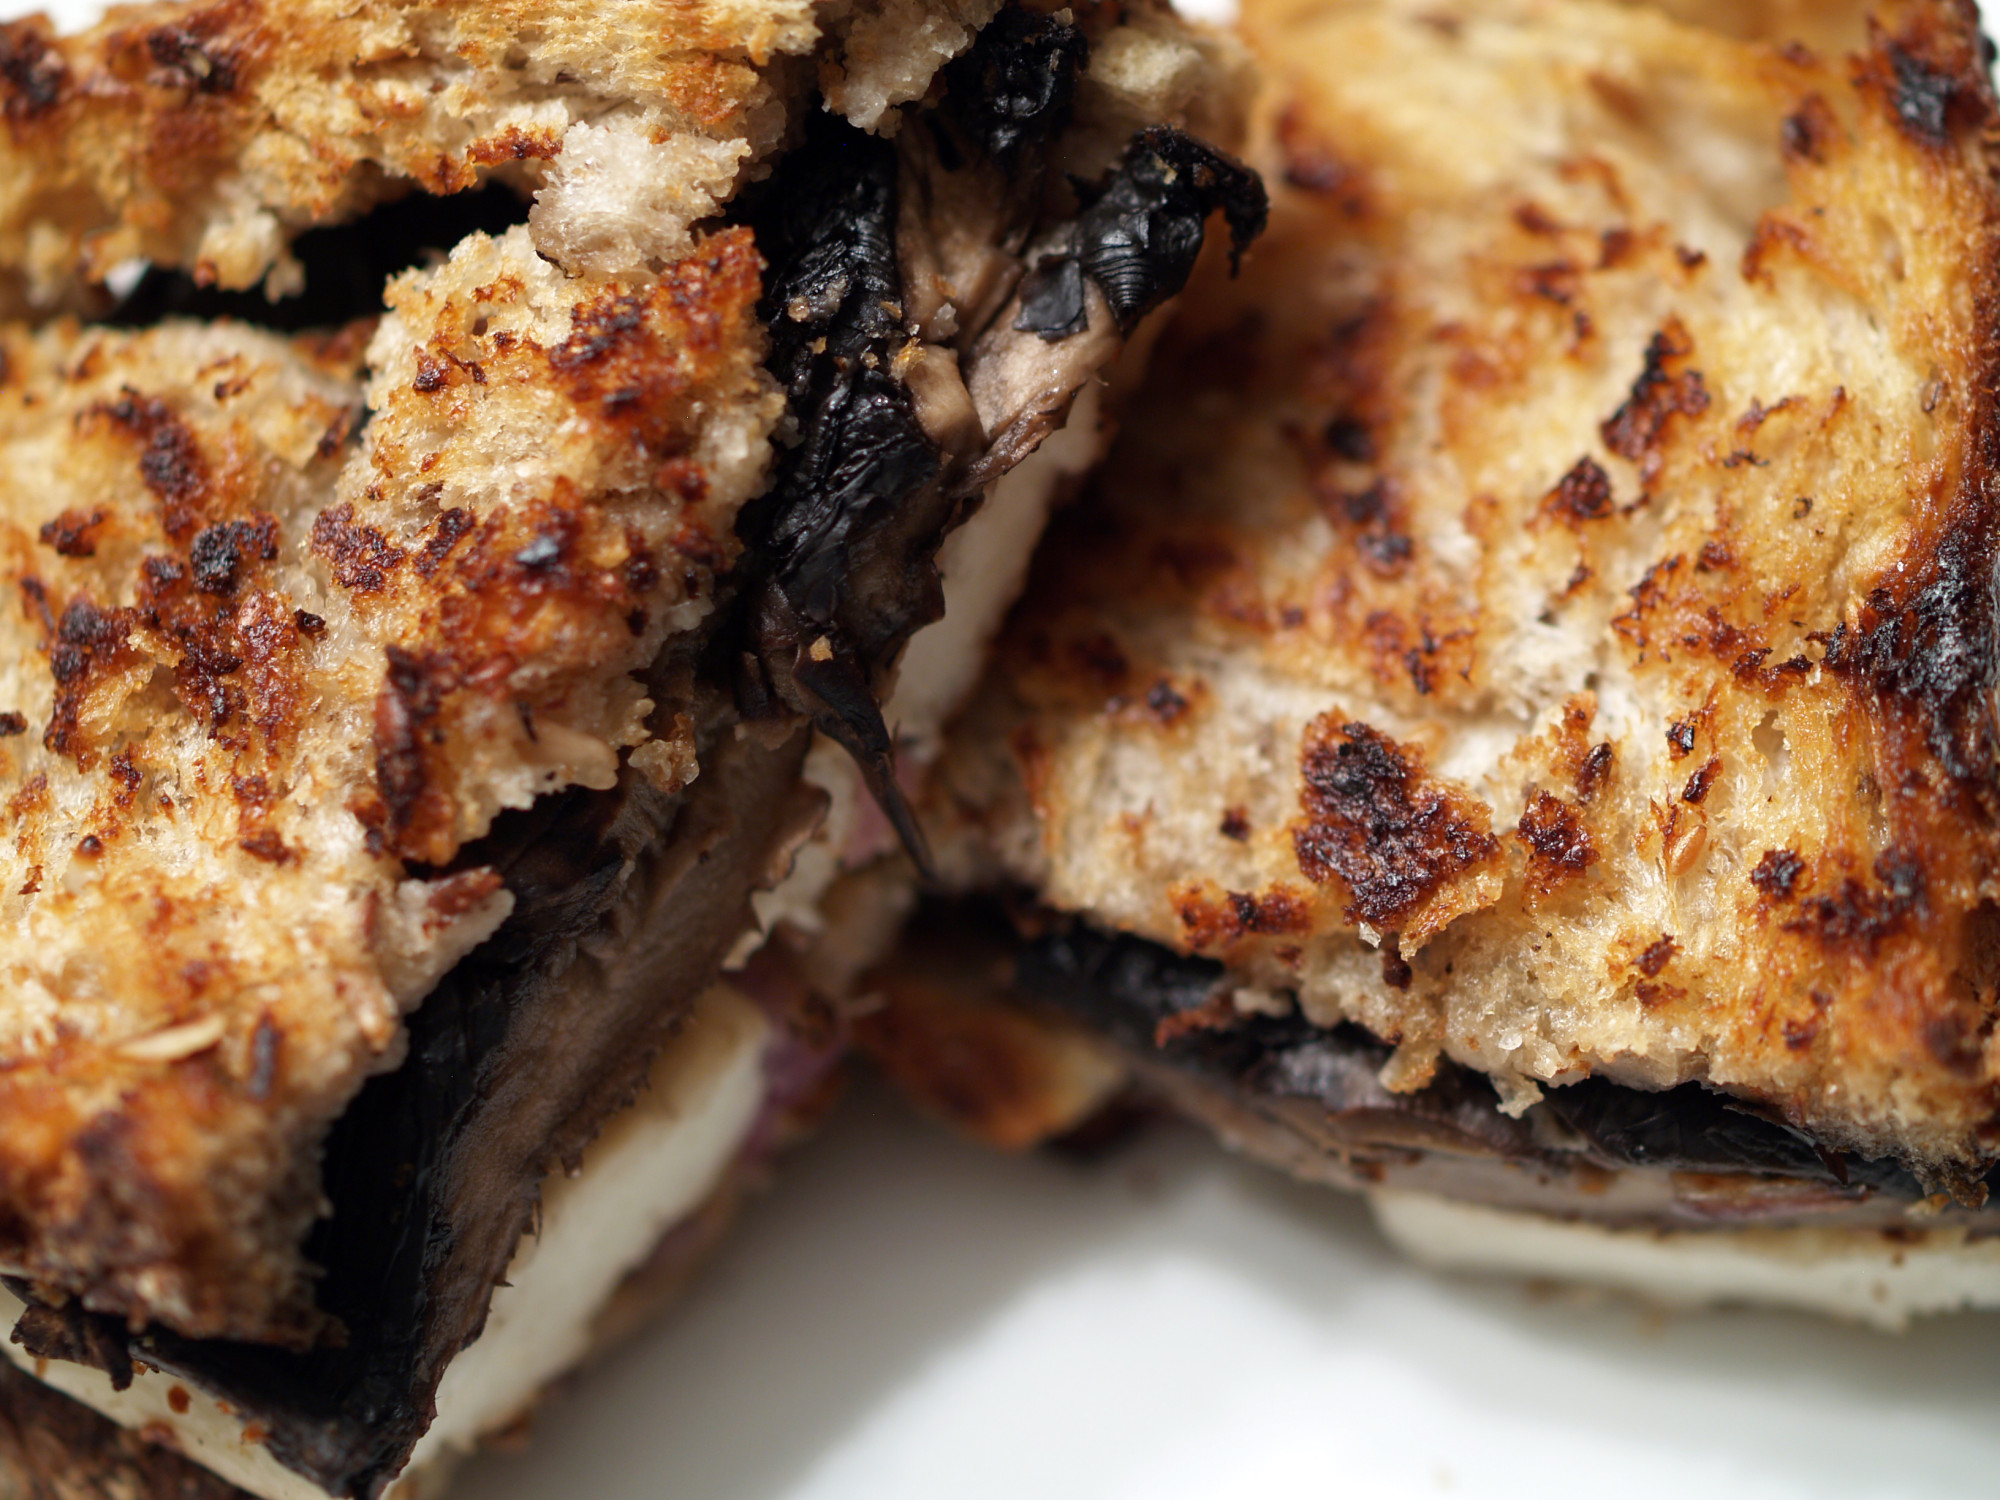 Halloumi & Portobello Grilled Cheese